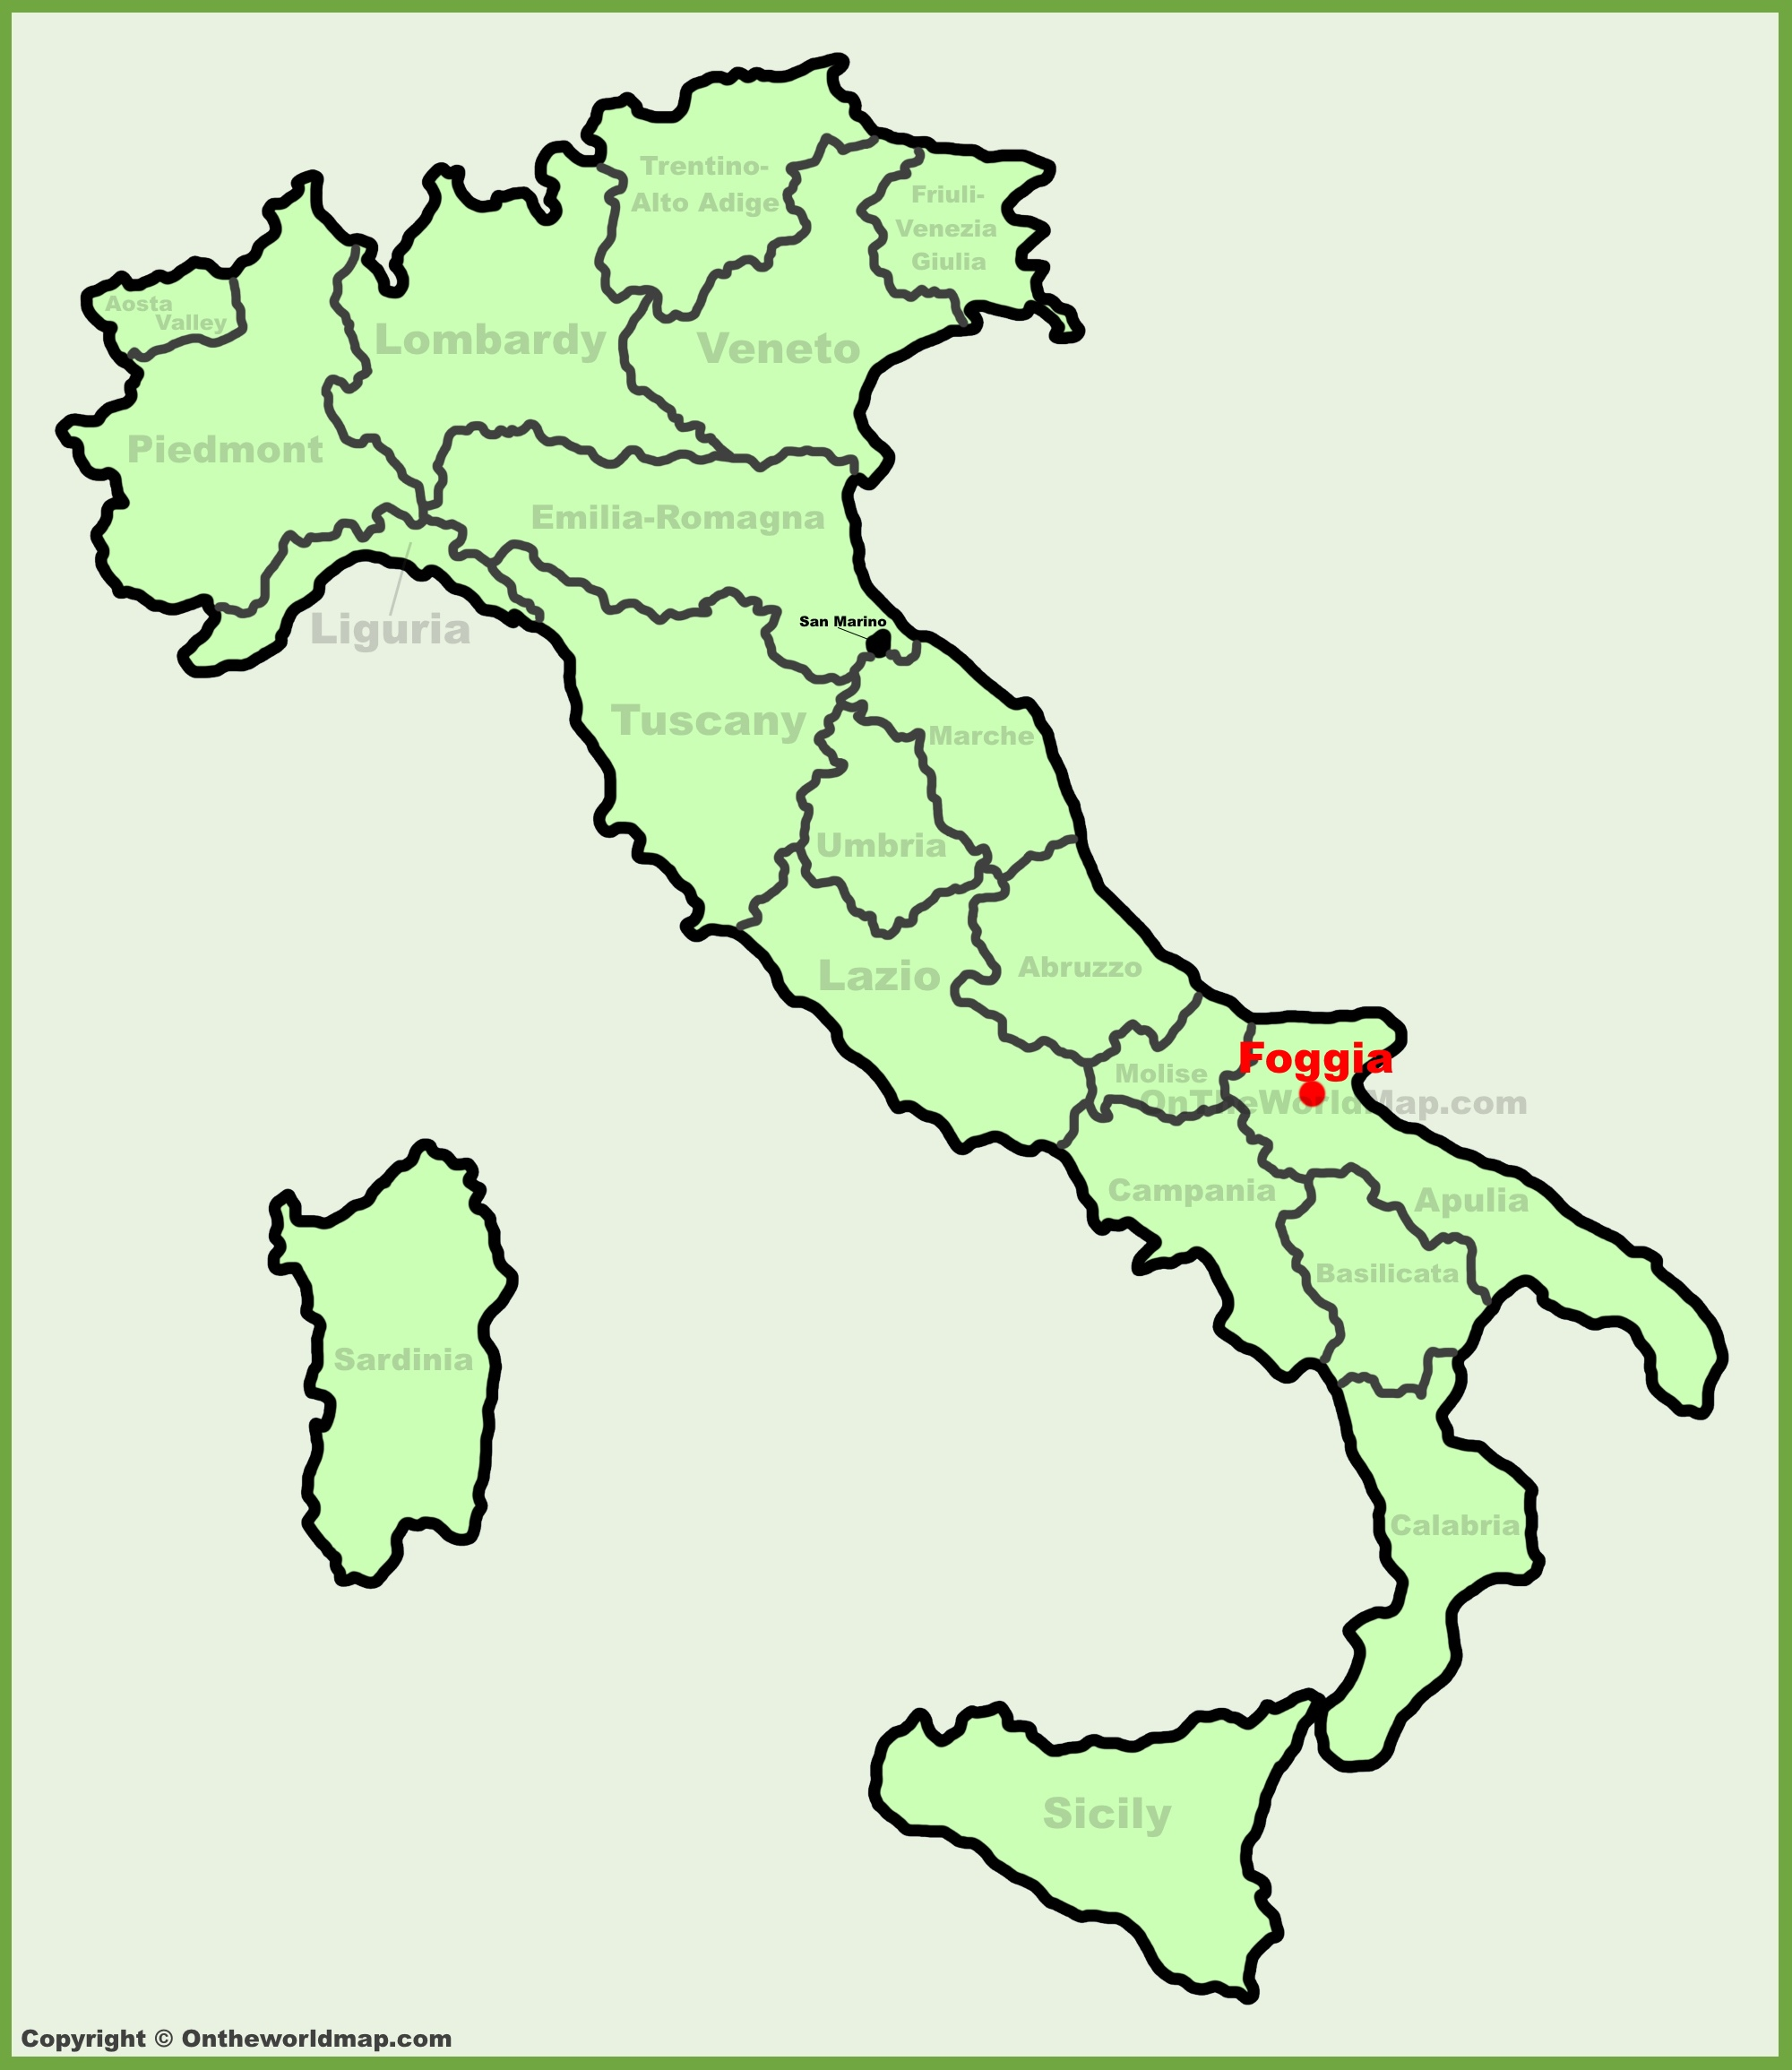 Foggia location on the Italy map